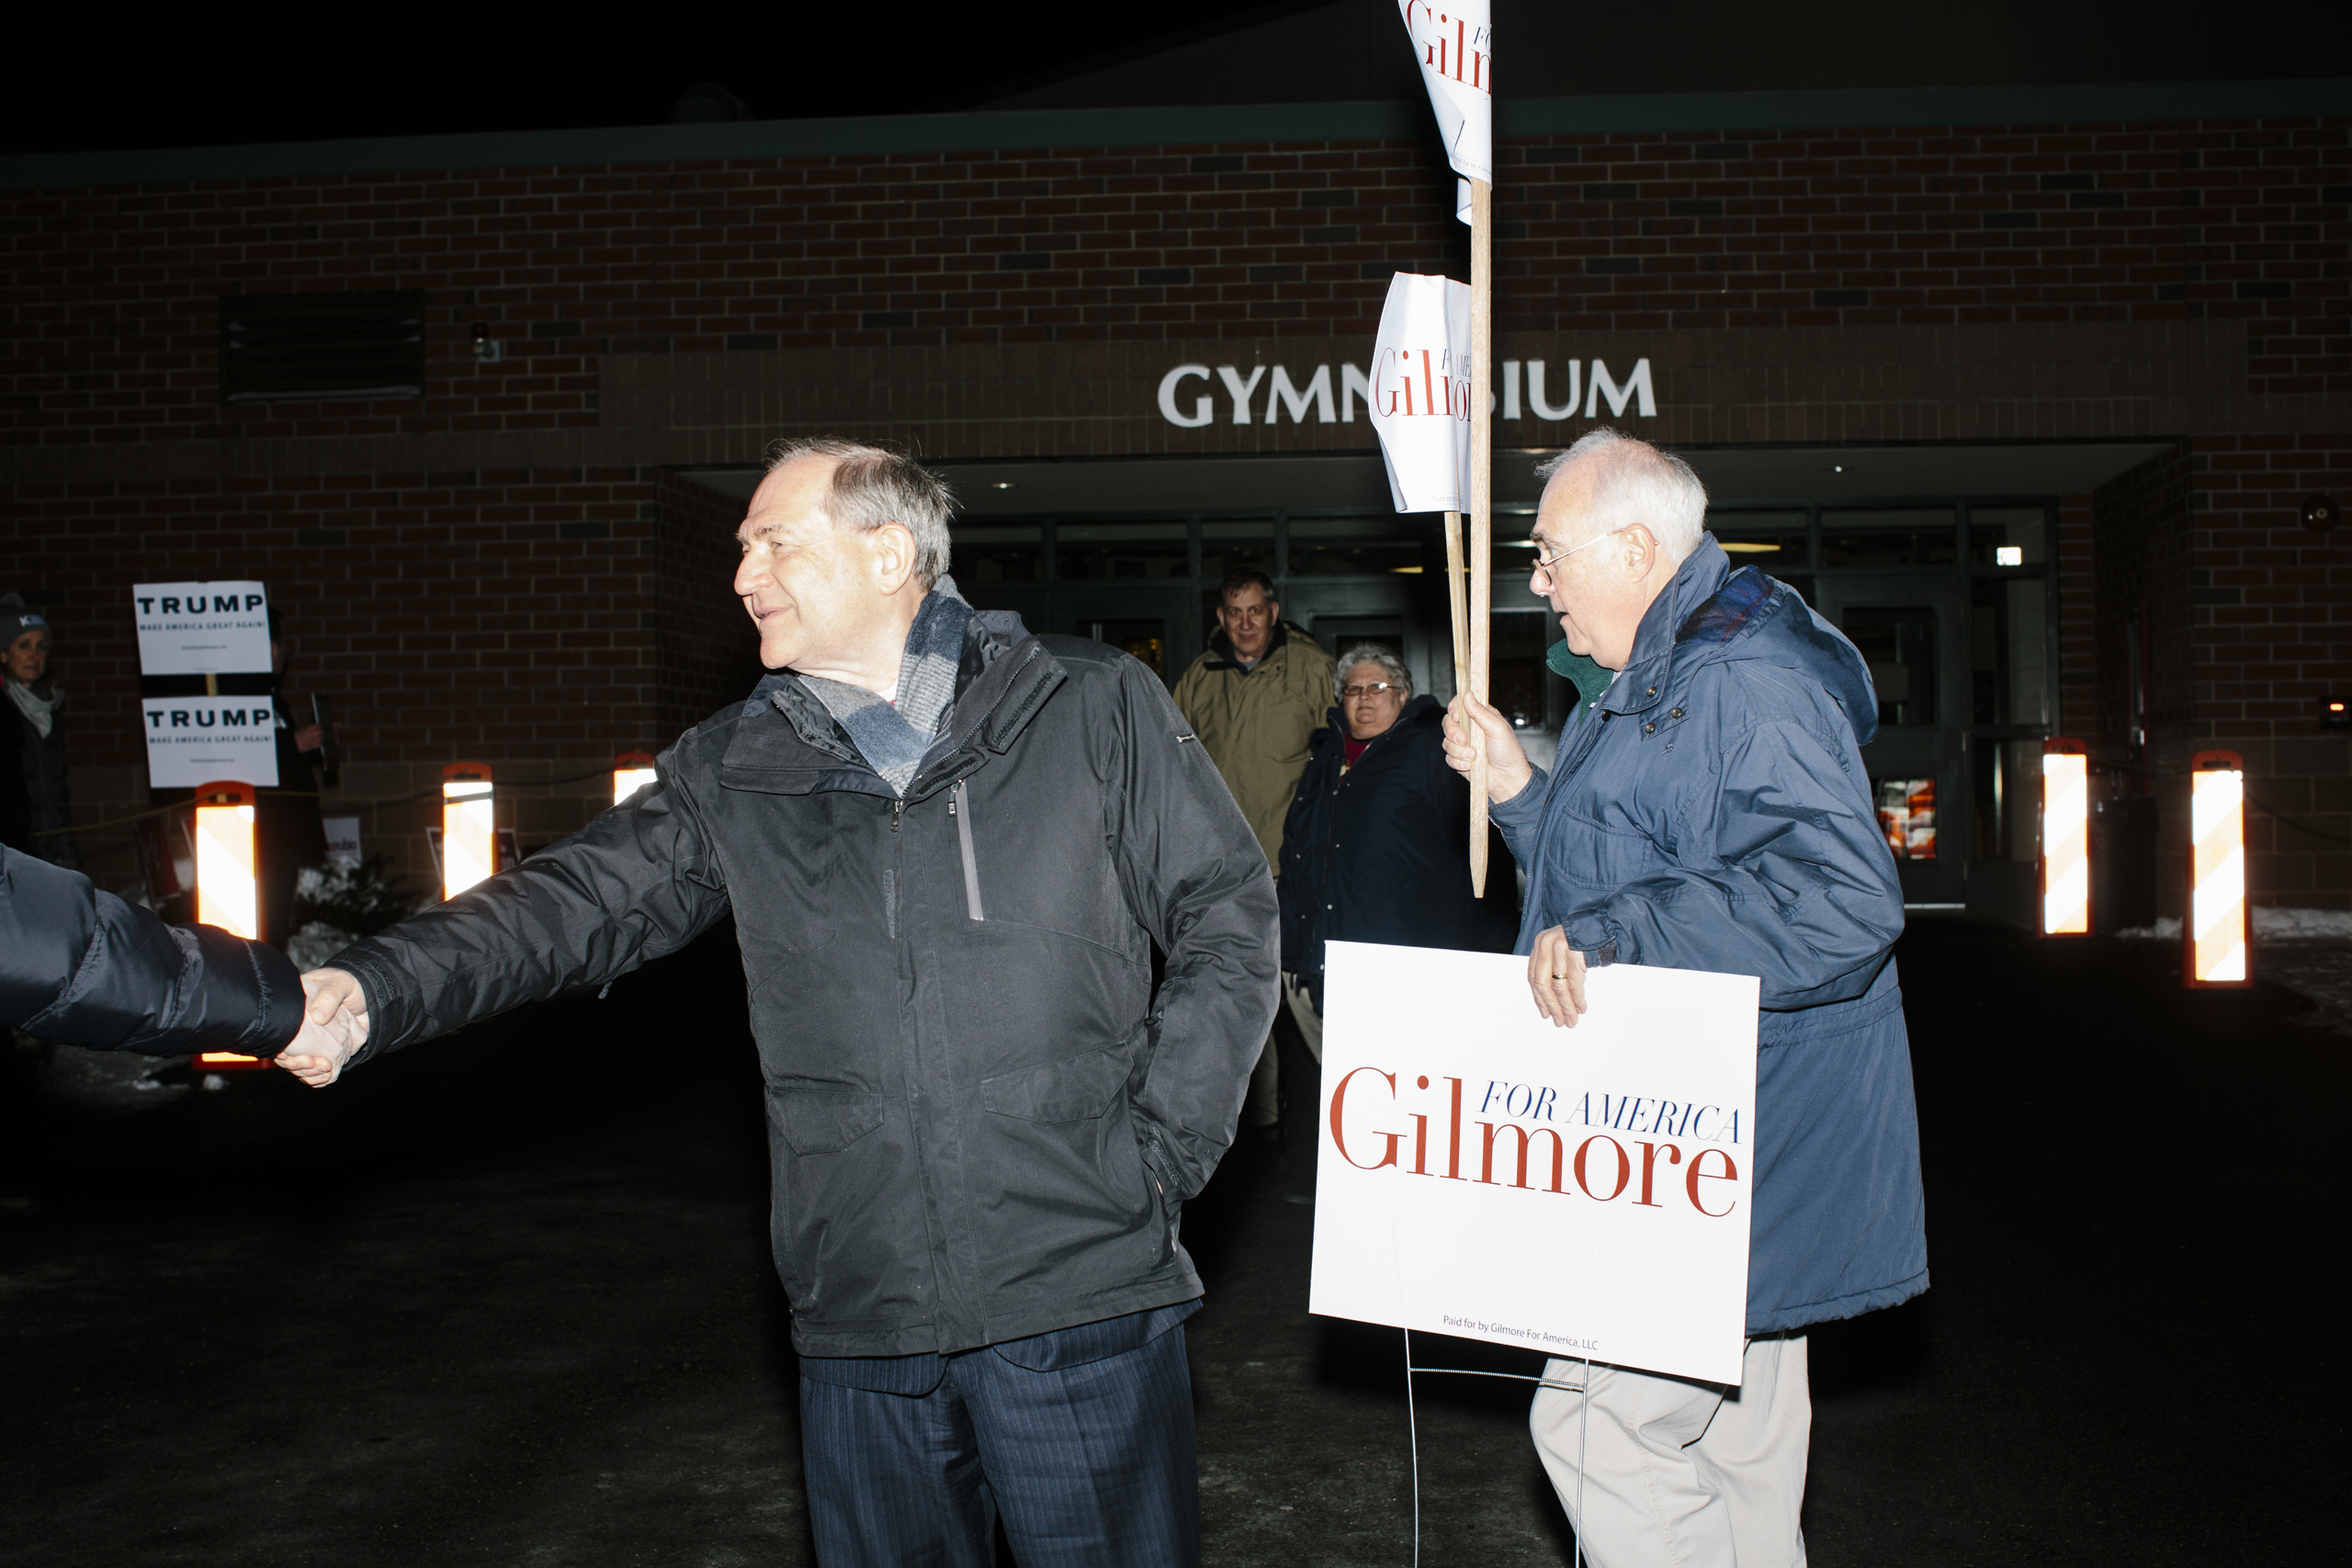 Former Virginia governor and Republican presidential candidate Jim Gilmore greets people outside the polling station at Bedford High School in Bedford New Hampshire, on the day of primary voting, Feb. 9, 2016.